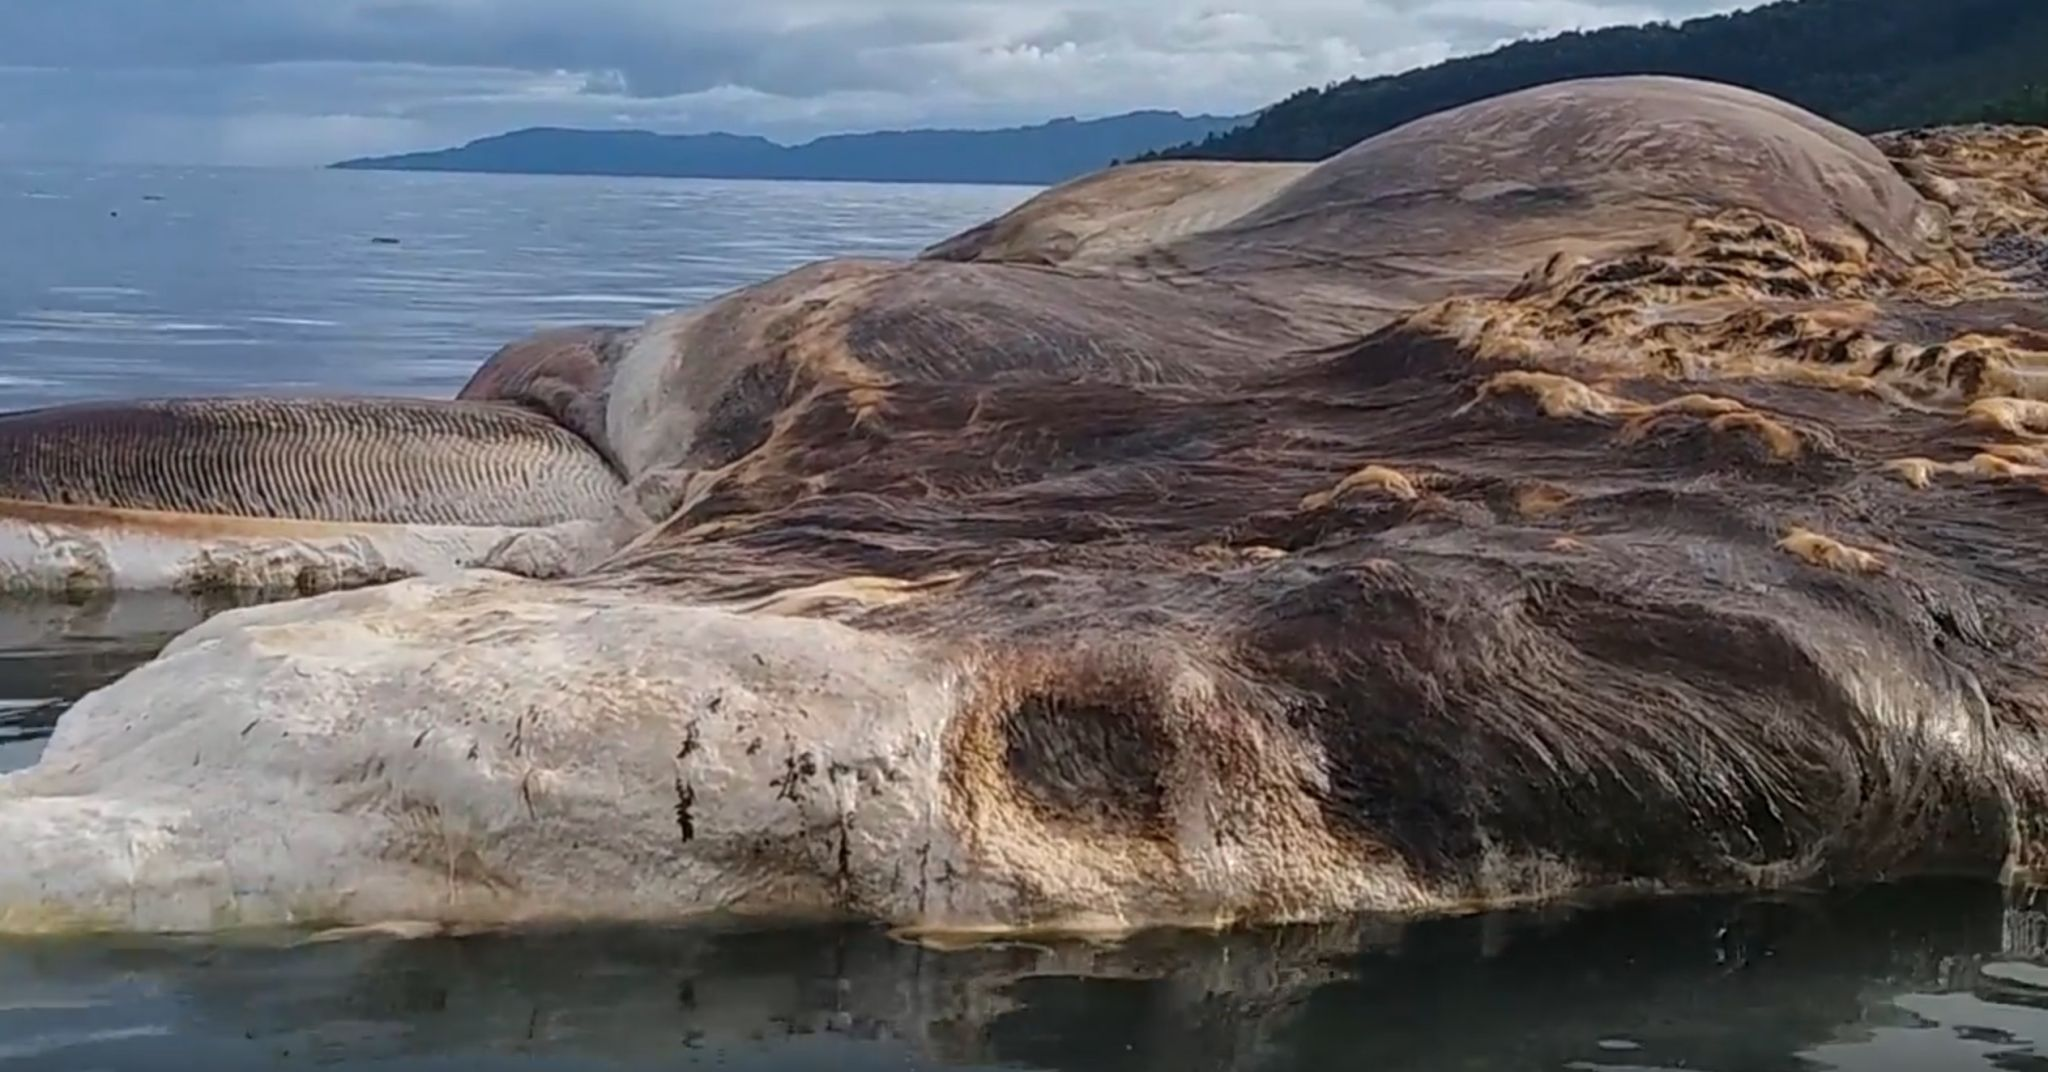 Scientists Identify 50 Foot Creature That Washed Up On An